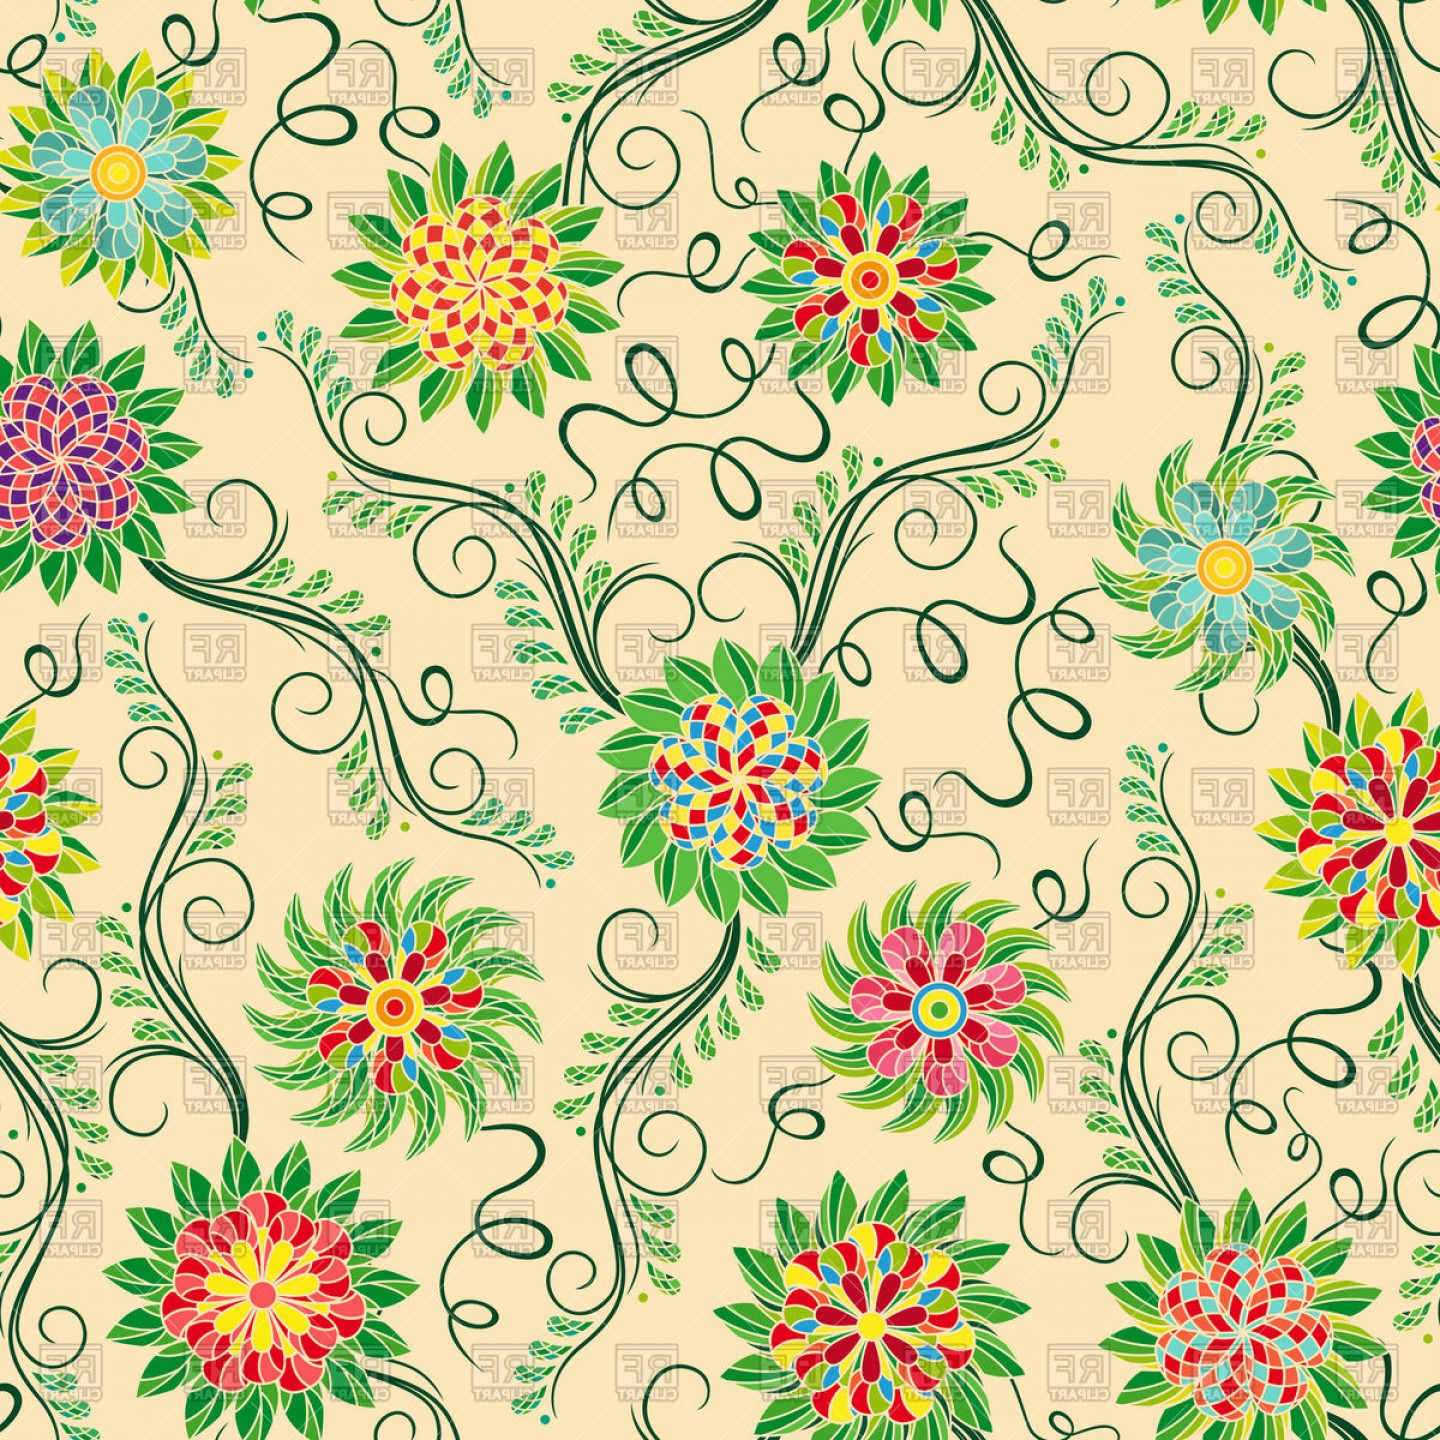 Beautiful Flowers Vector Graphic: Seamless Colourful Pattern With Beautiful Flowers On Beige Background Vector Clipart